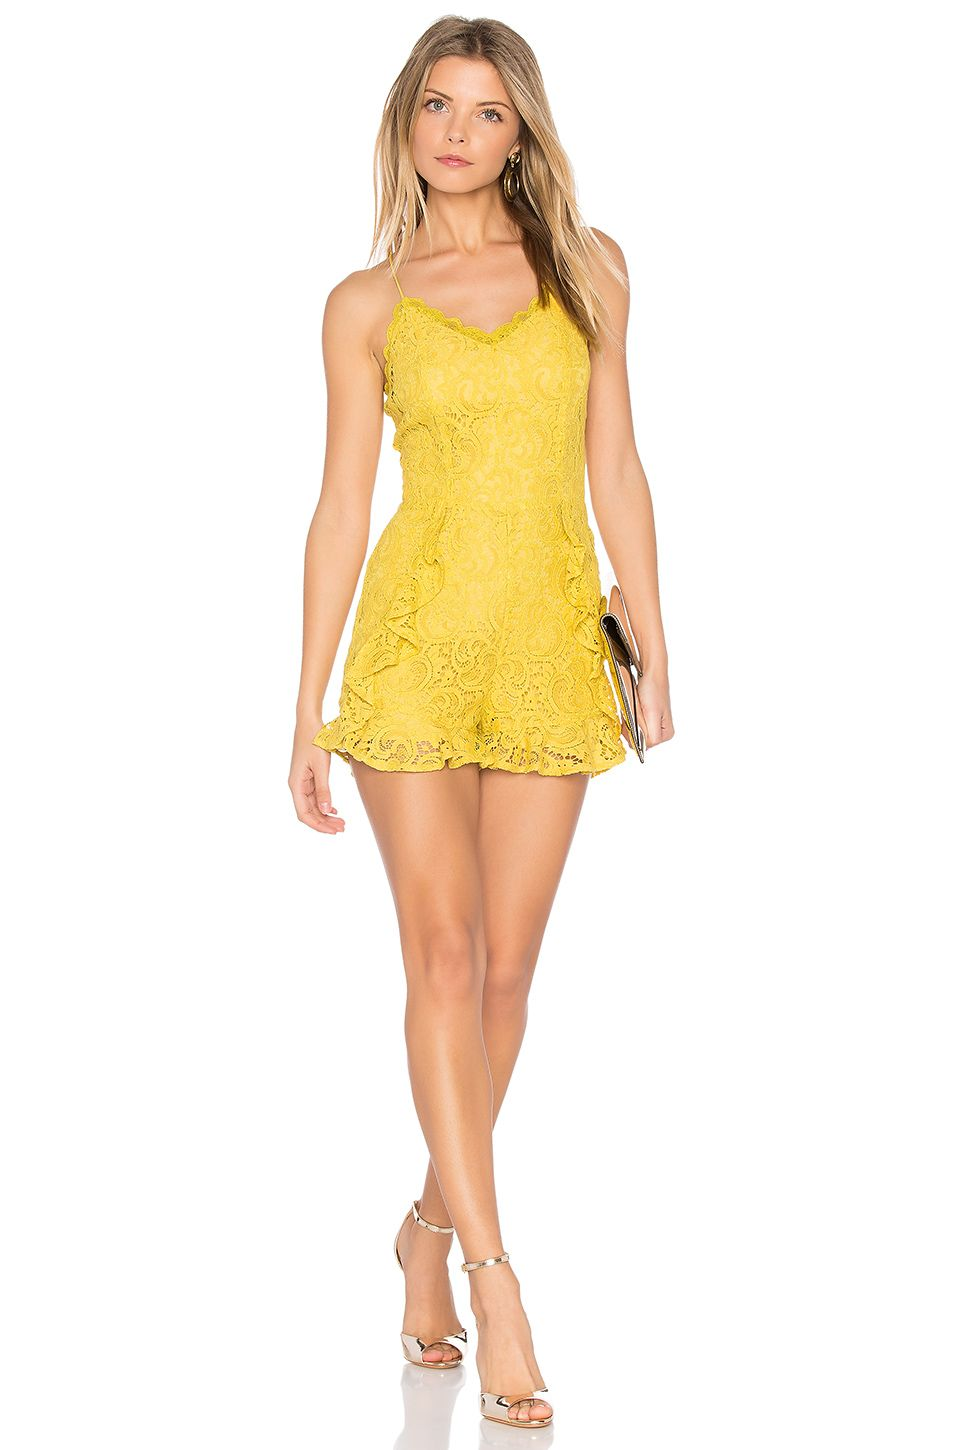 a3c68651344 J.O.A. Frill Bottom Detail Lace Romper in Yellow